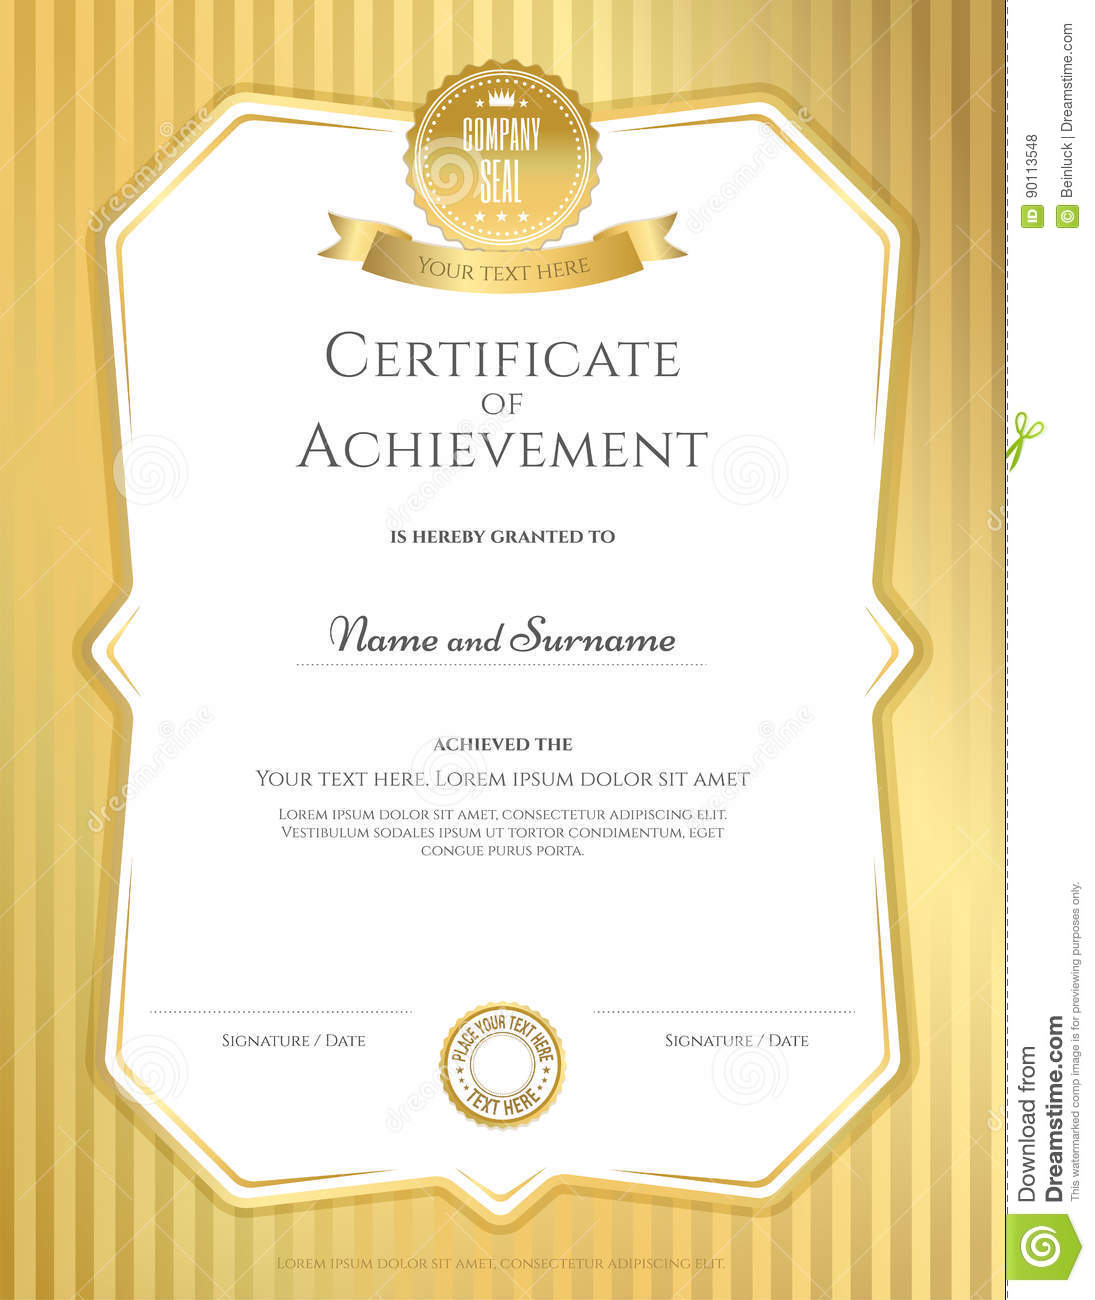 Portrait Certificate Of Achievement Template In Vector ...